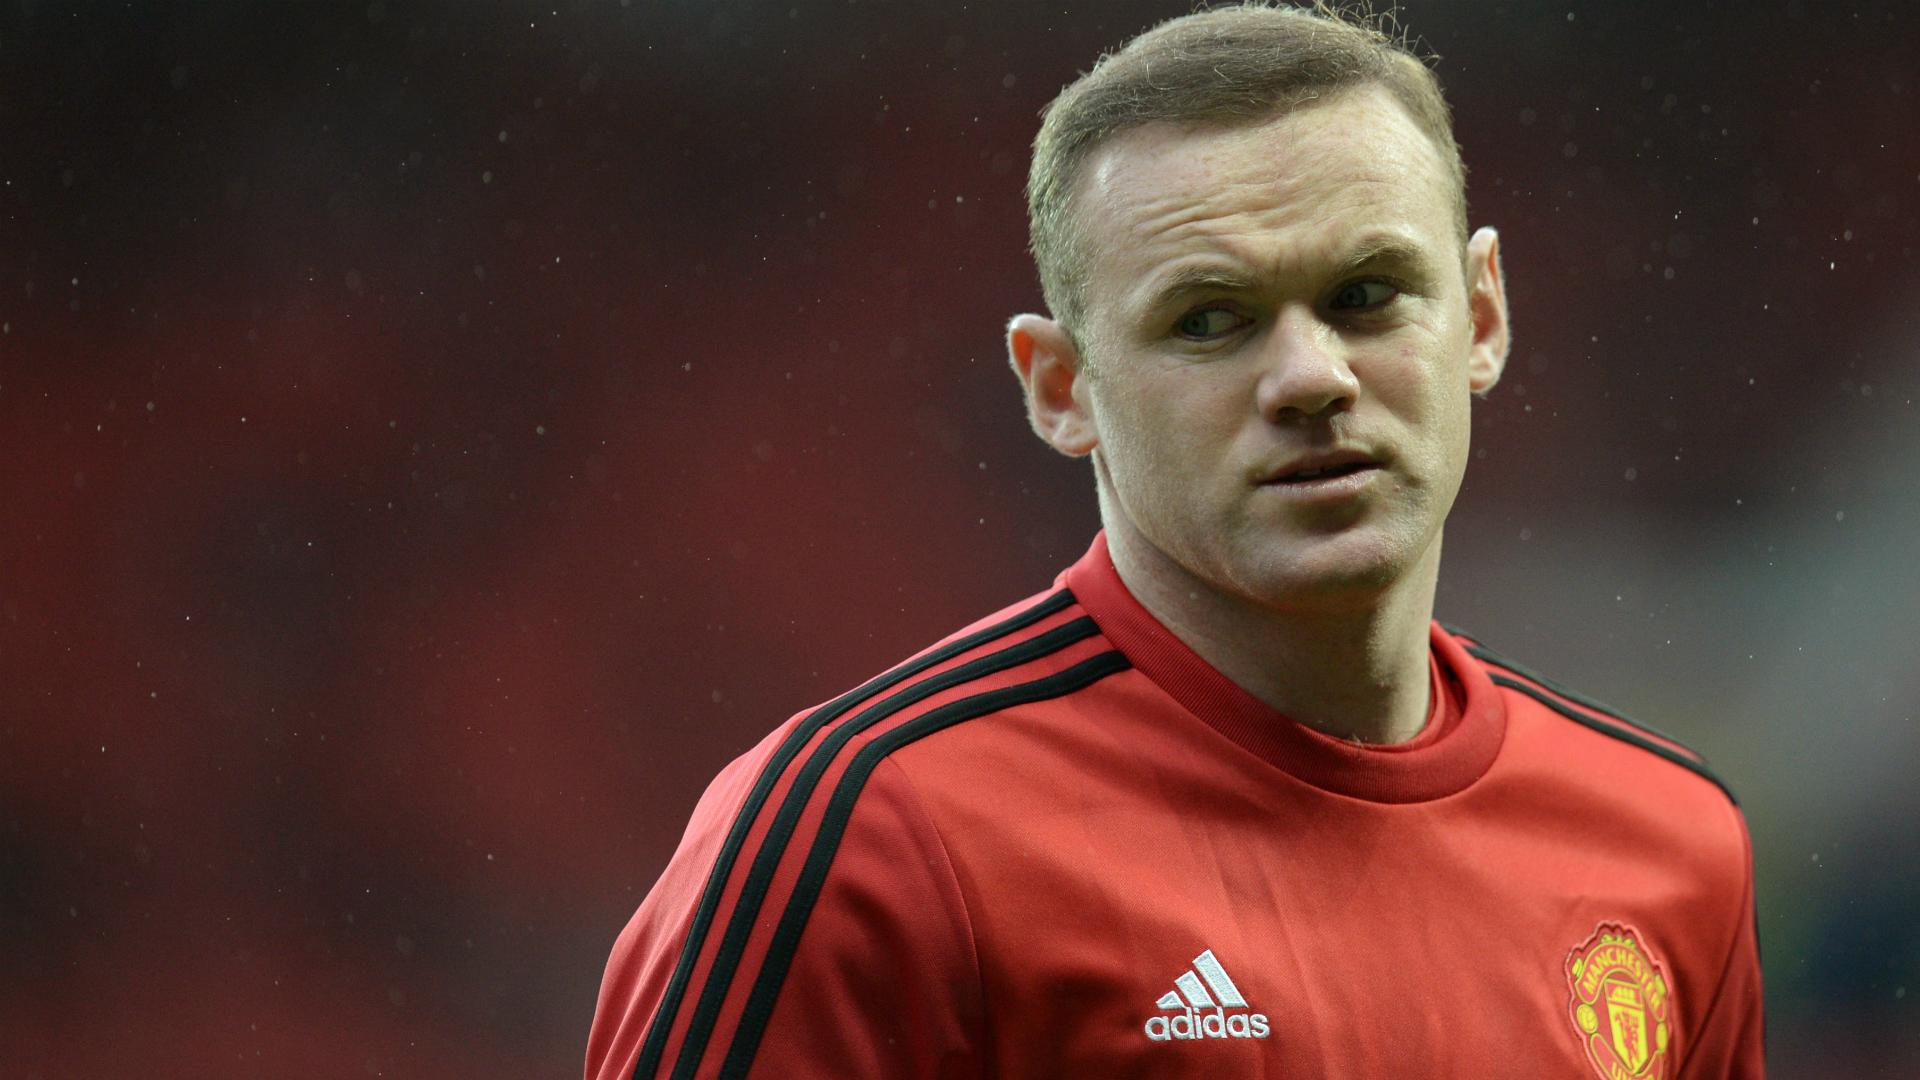 wayne rooney biography Watch video  explore the fast-paced life of british soccer star wayne rooney, play-maker and record-holder, on biographycom.